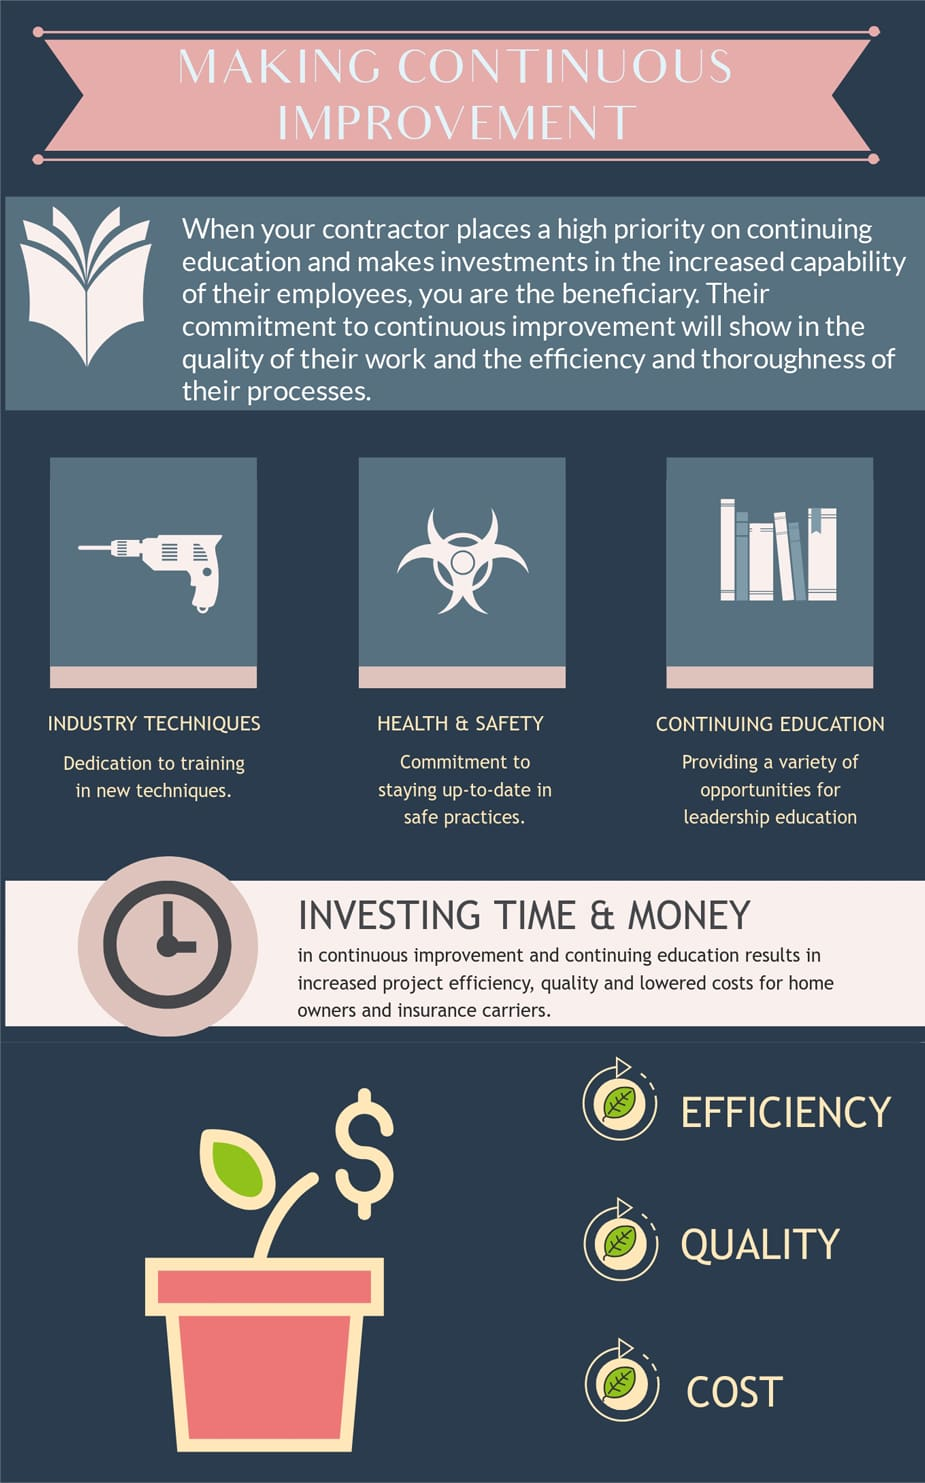 Investing Time & Money